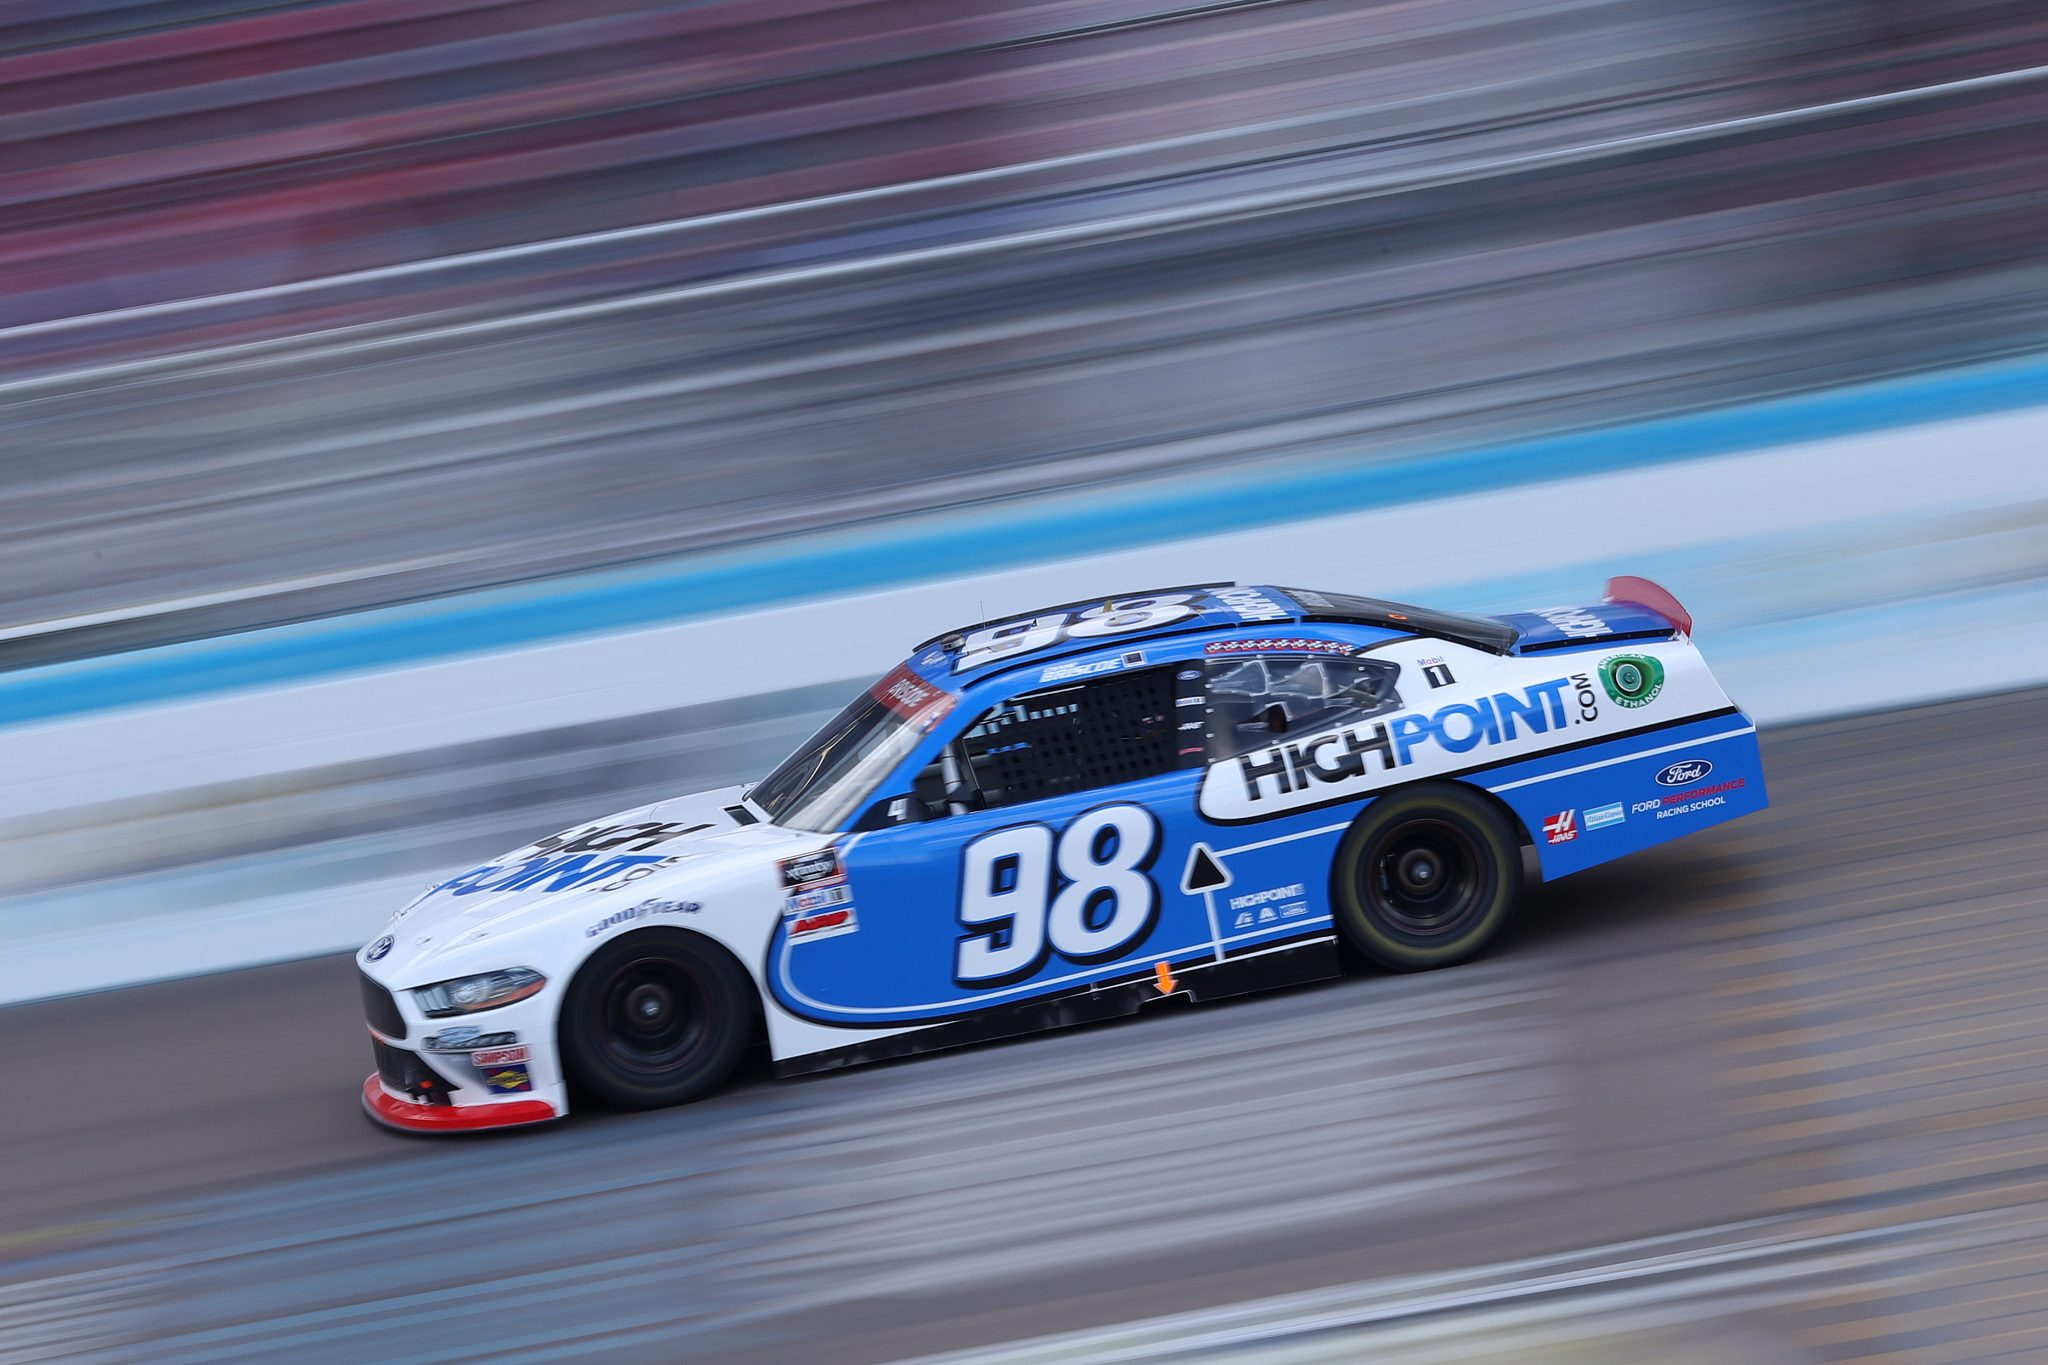 AVONDALE, ARIZONA - NOVEMBER 07: Chase Briscoe, driver of the #98 HighPoint.com Ford, drives during the NASCAR Xfinity Series Desert Diamond Casino West Valley 200 at Phoenix Raceway on November 07, 2020 in Avondale, Arizona. (Photo by Chris Graythen/Getty Images) | Getty Images